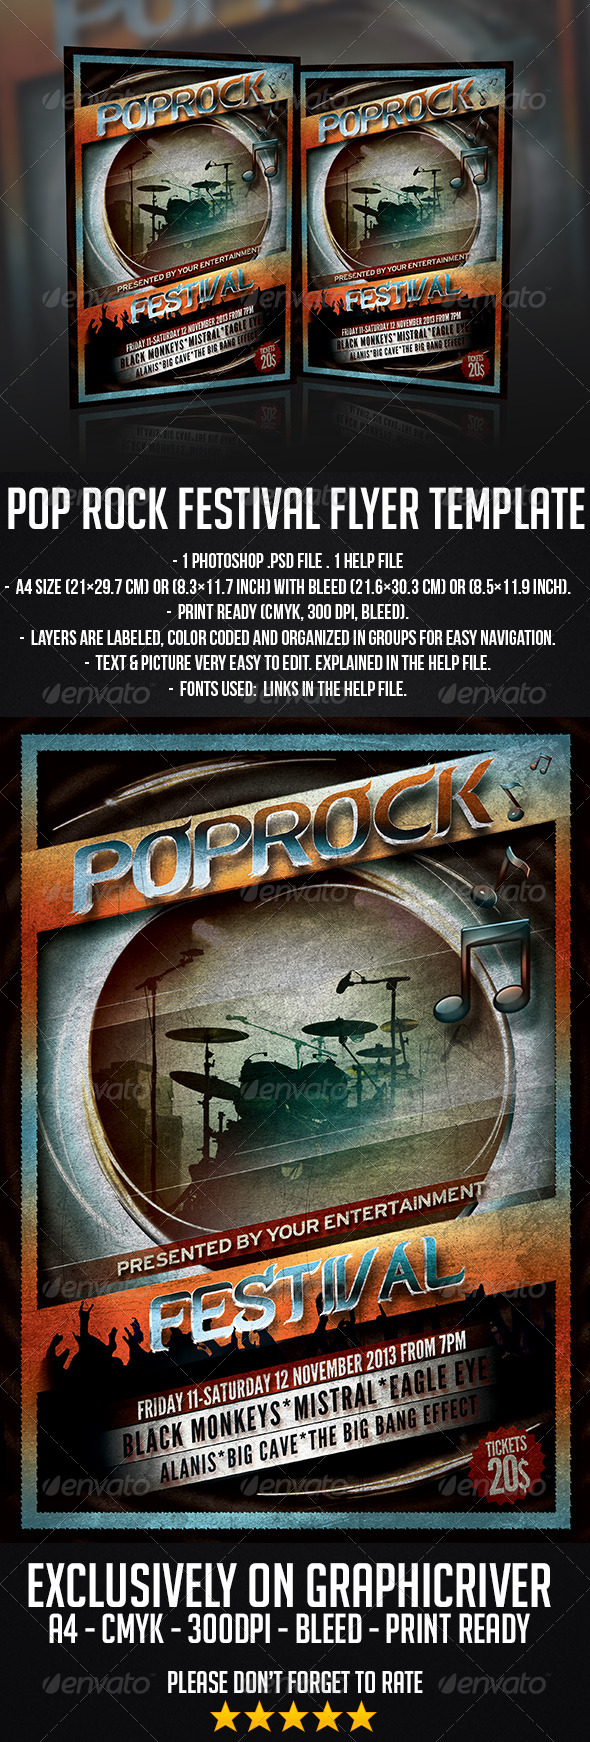 Pop Rock Festival Flyer Template - Concerts Events